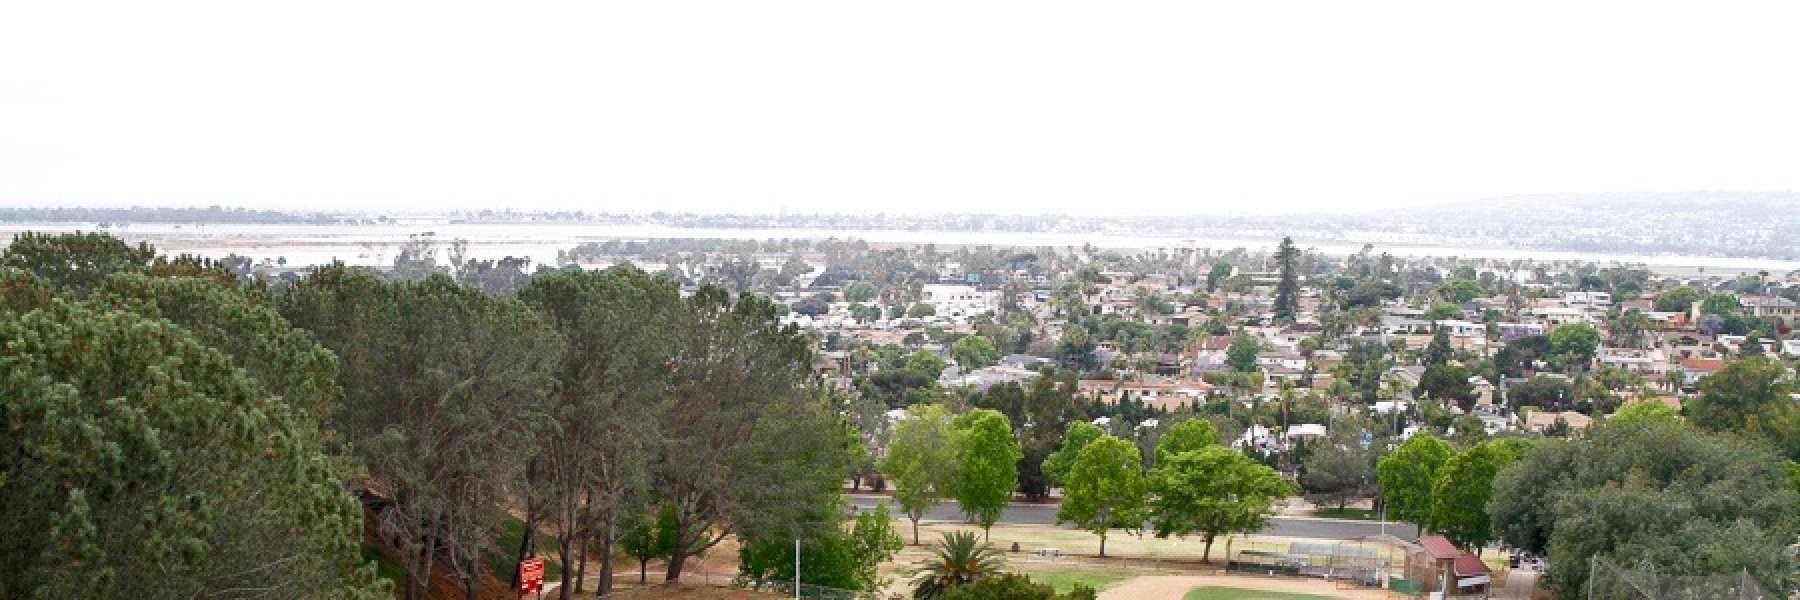 Bay Park is a community of homes in San Diego California